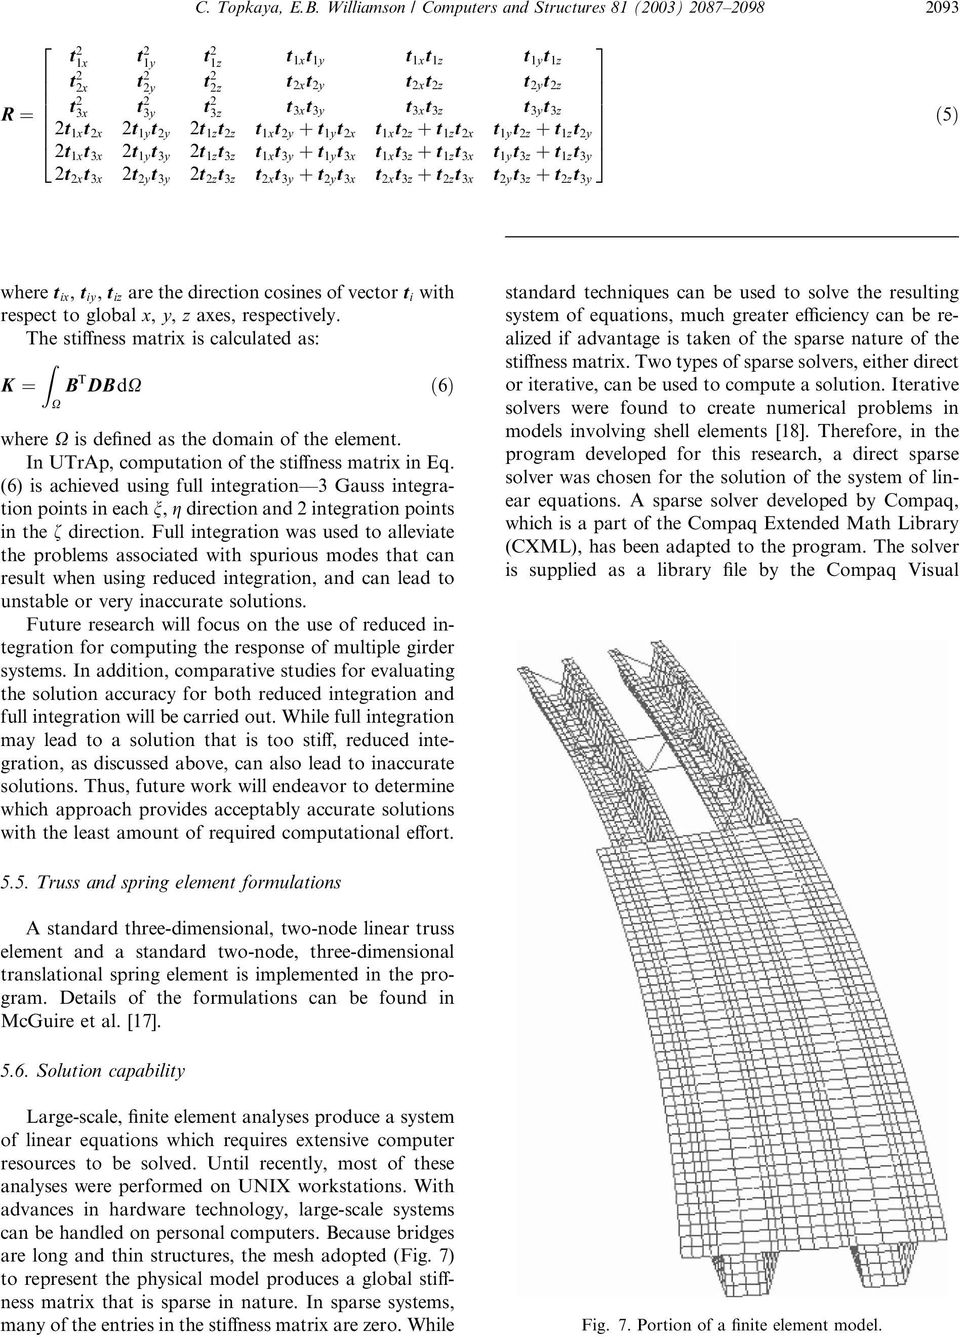 Development of computational software for analysis of curved